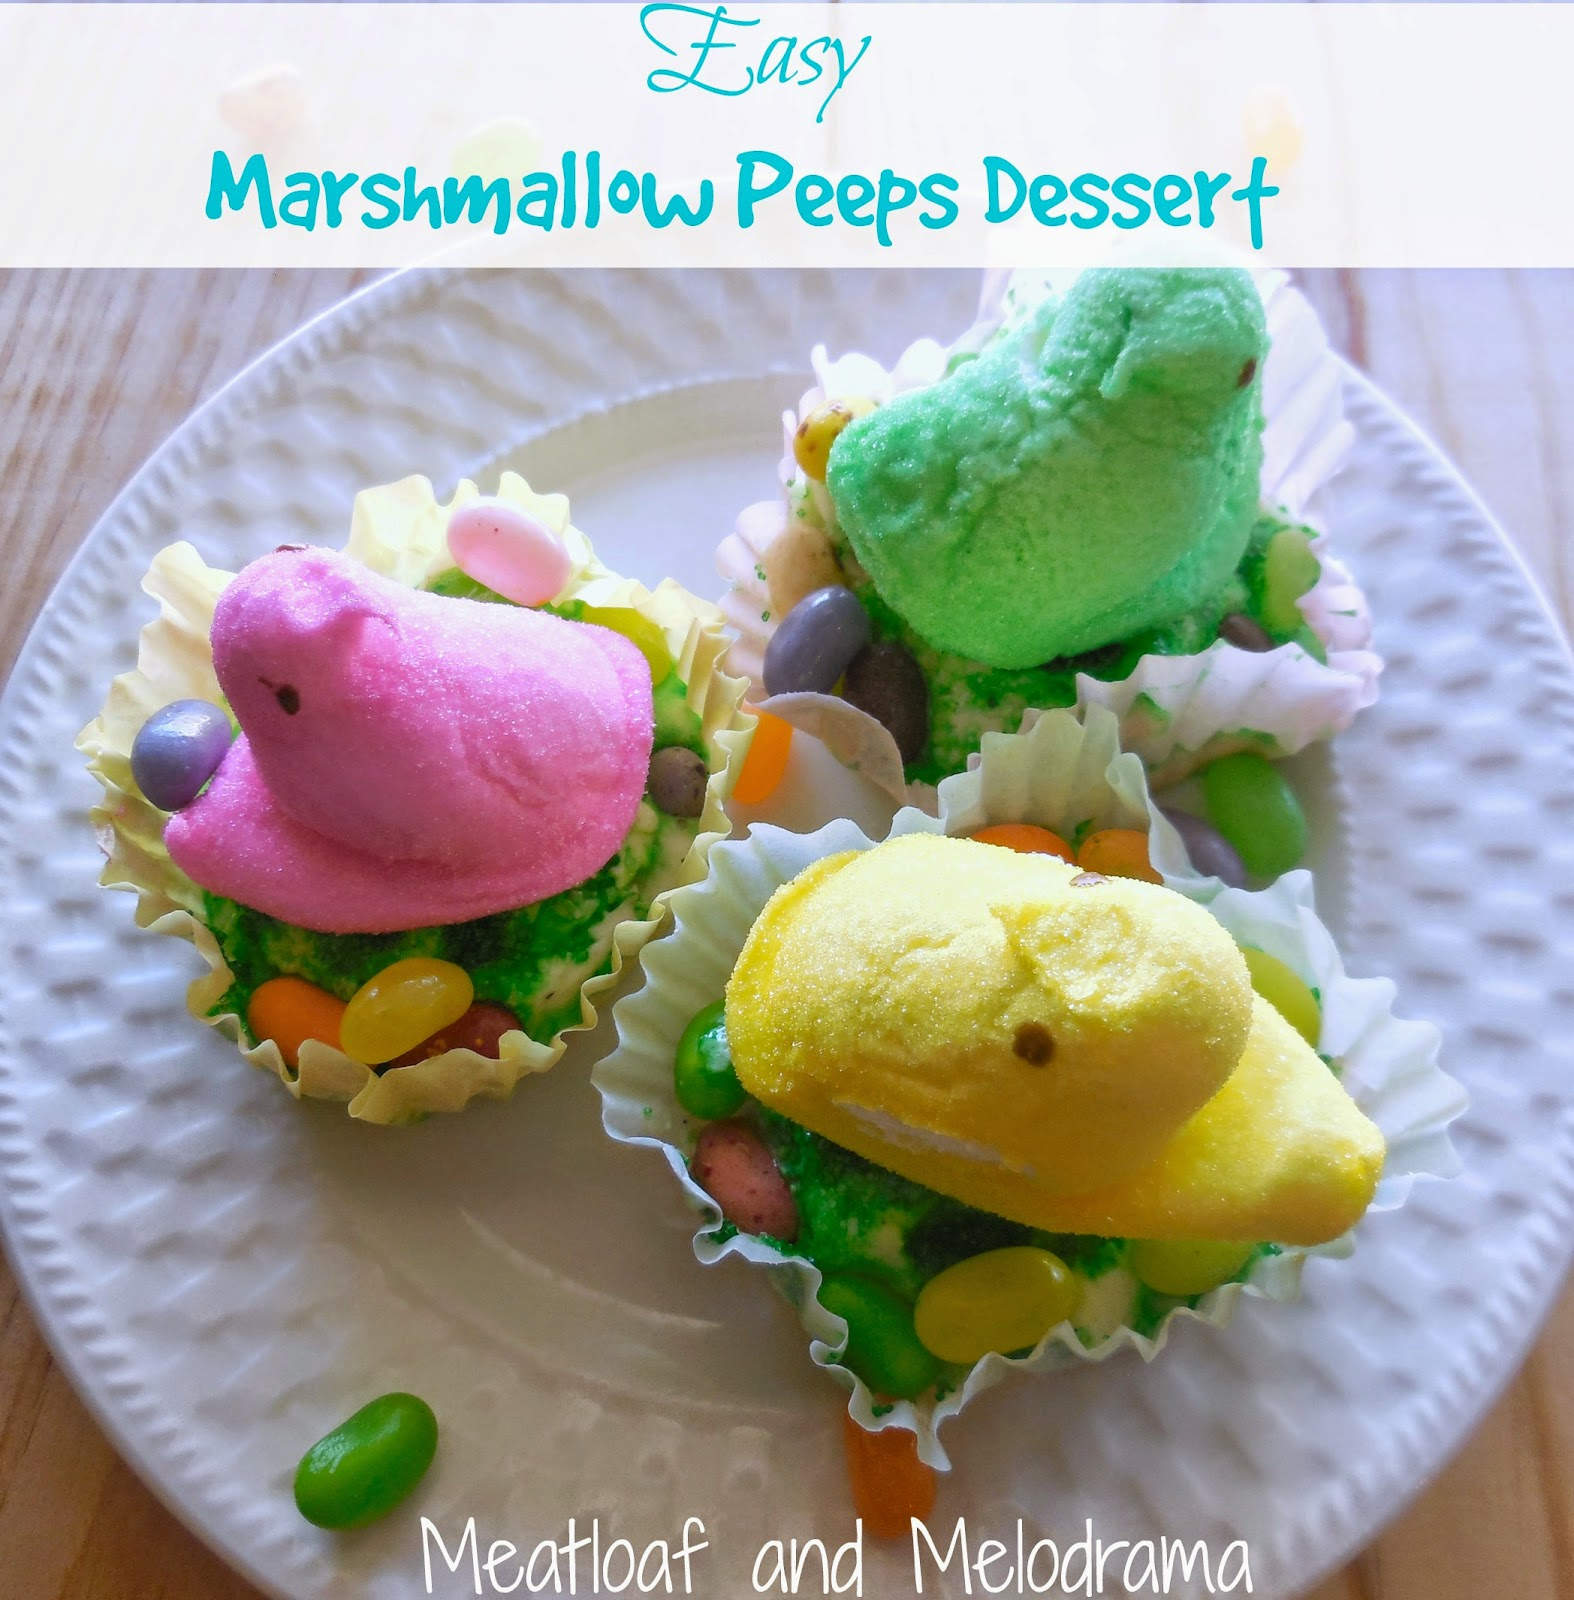 marshmallow peeps on ice cream cups with jelly beans